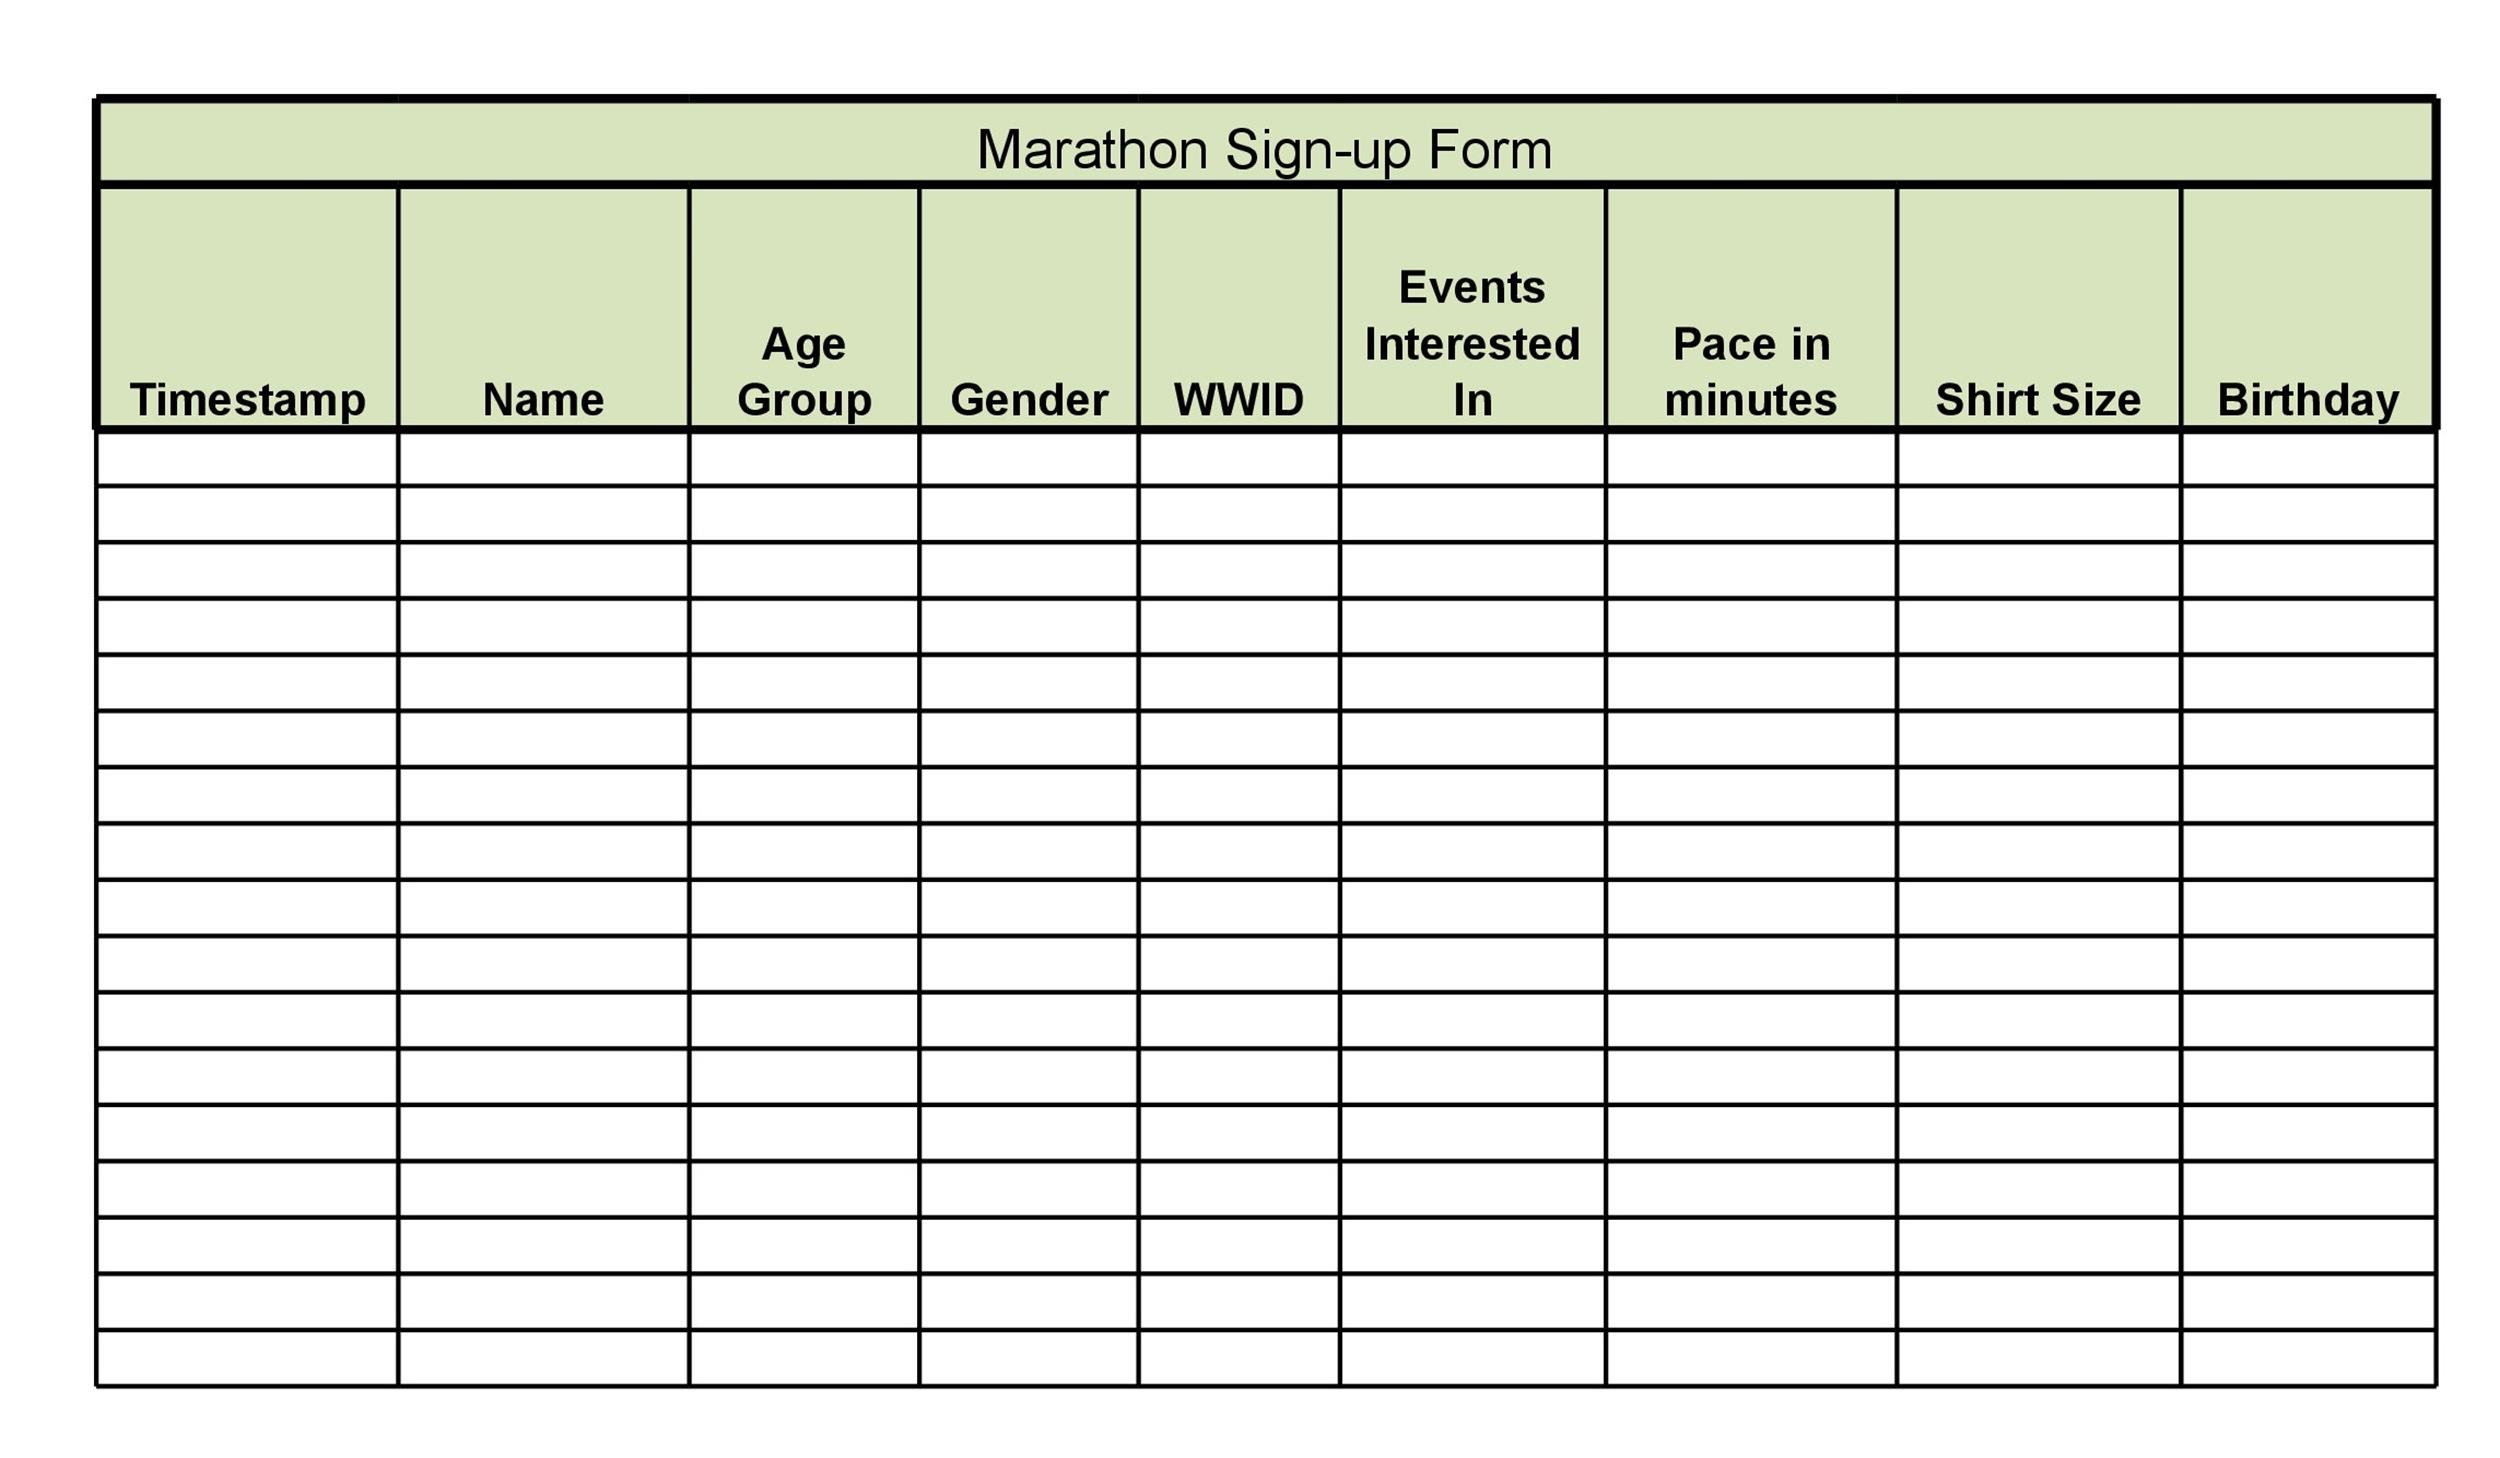 Sign In Roster Template. Sample Sign Up Sheet - 8+ Example, Format